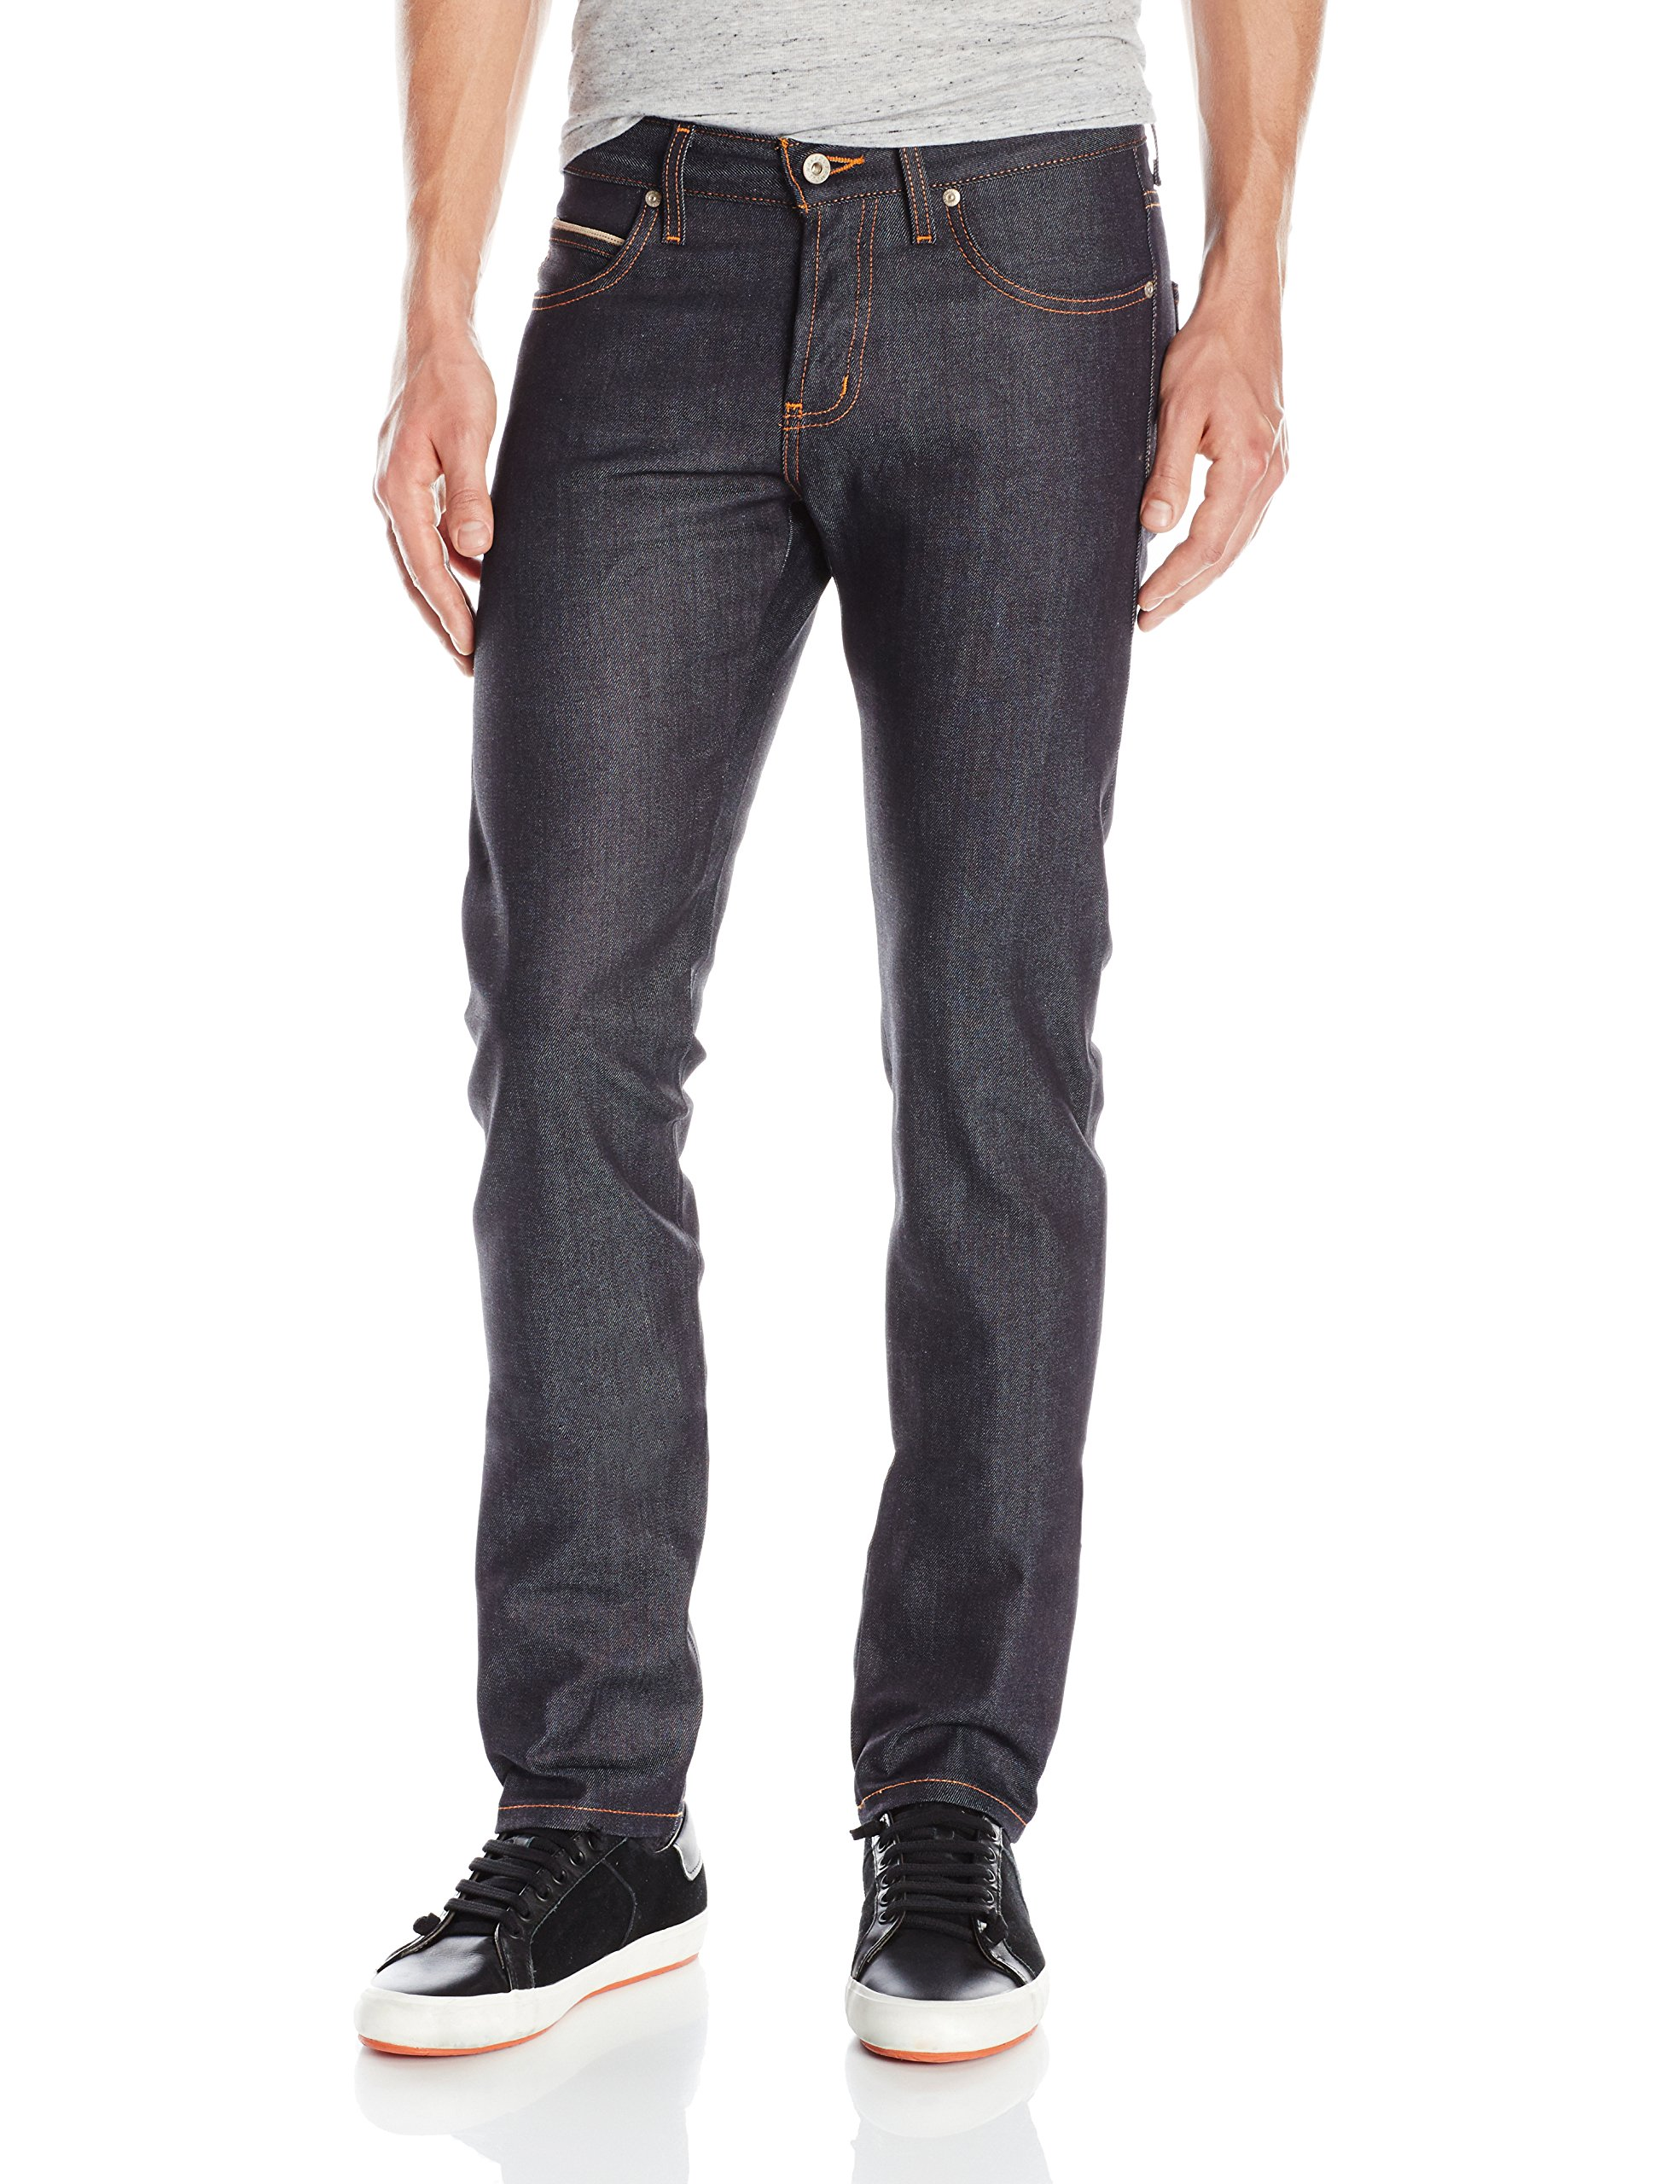 Naked & Famous Denim Men's Superskinnyguy Stretch Selvedge Jean, Indigo, 32 by Naked & Famous Denim (Image #1)